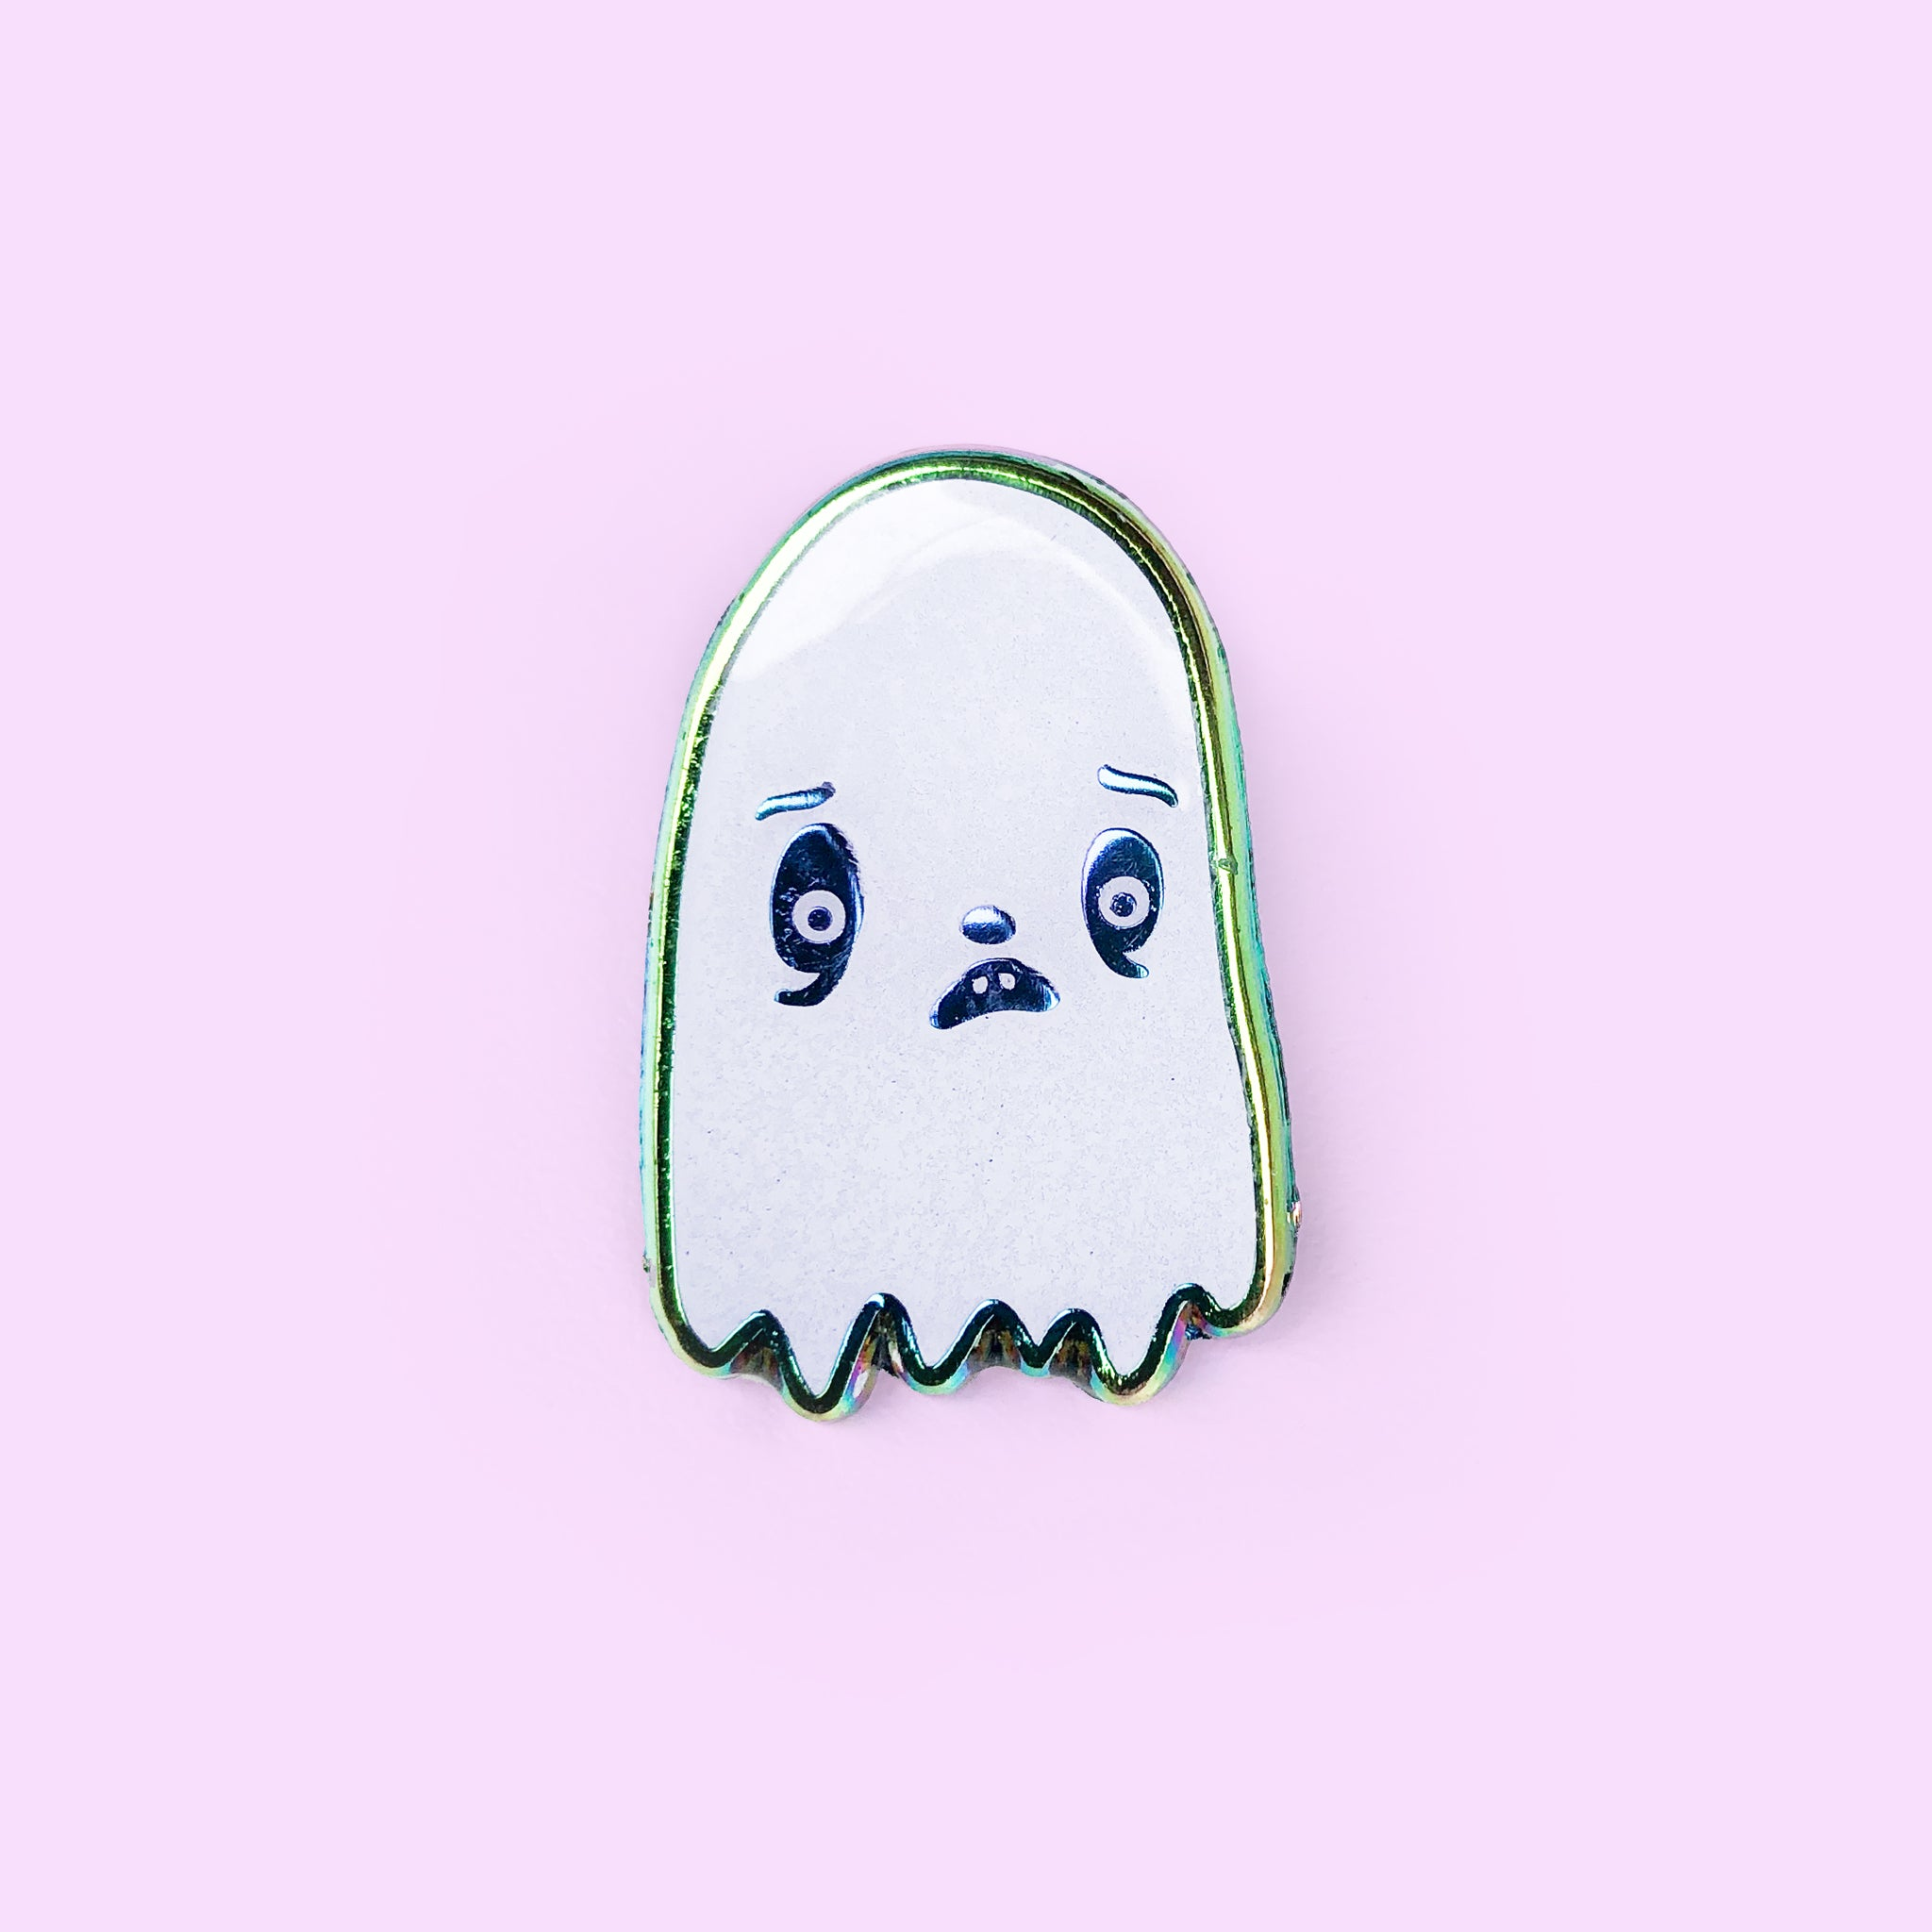 Glowstie Lapel Pin